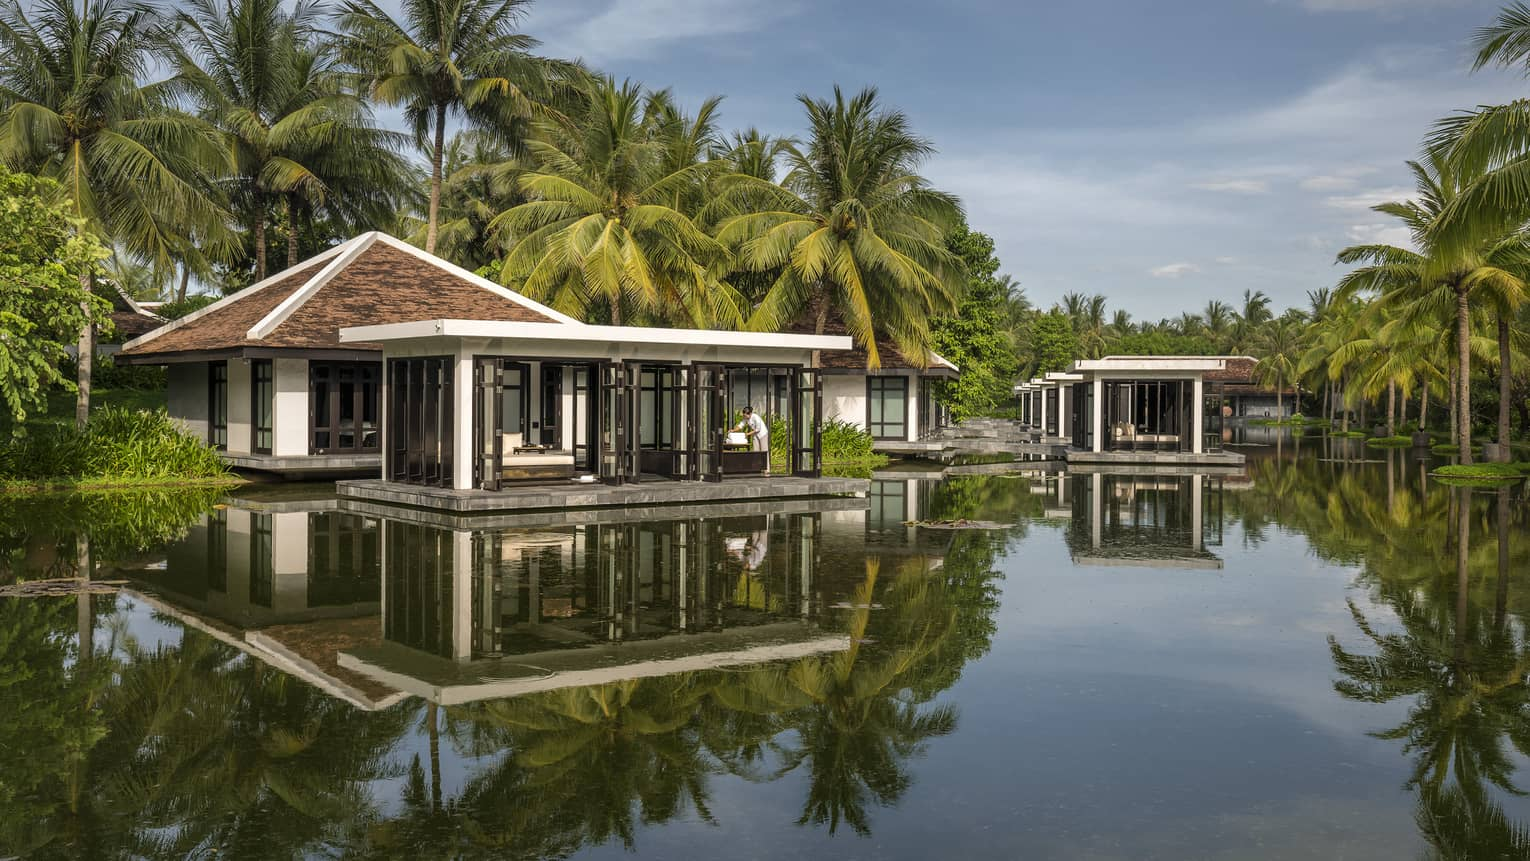 Overwater Heart of Earth spa villa staff folds white towels on deck, reflection in water